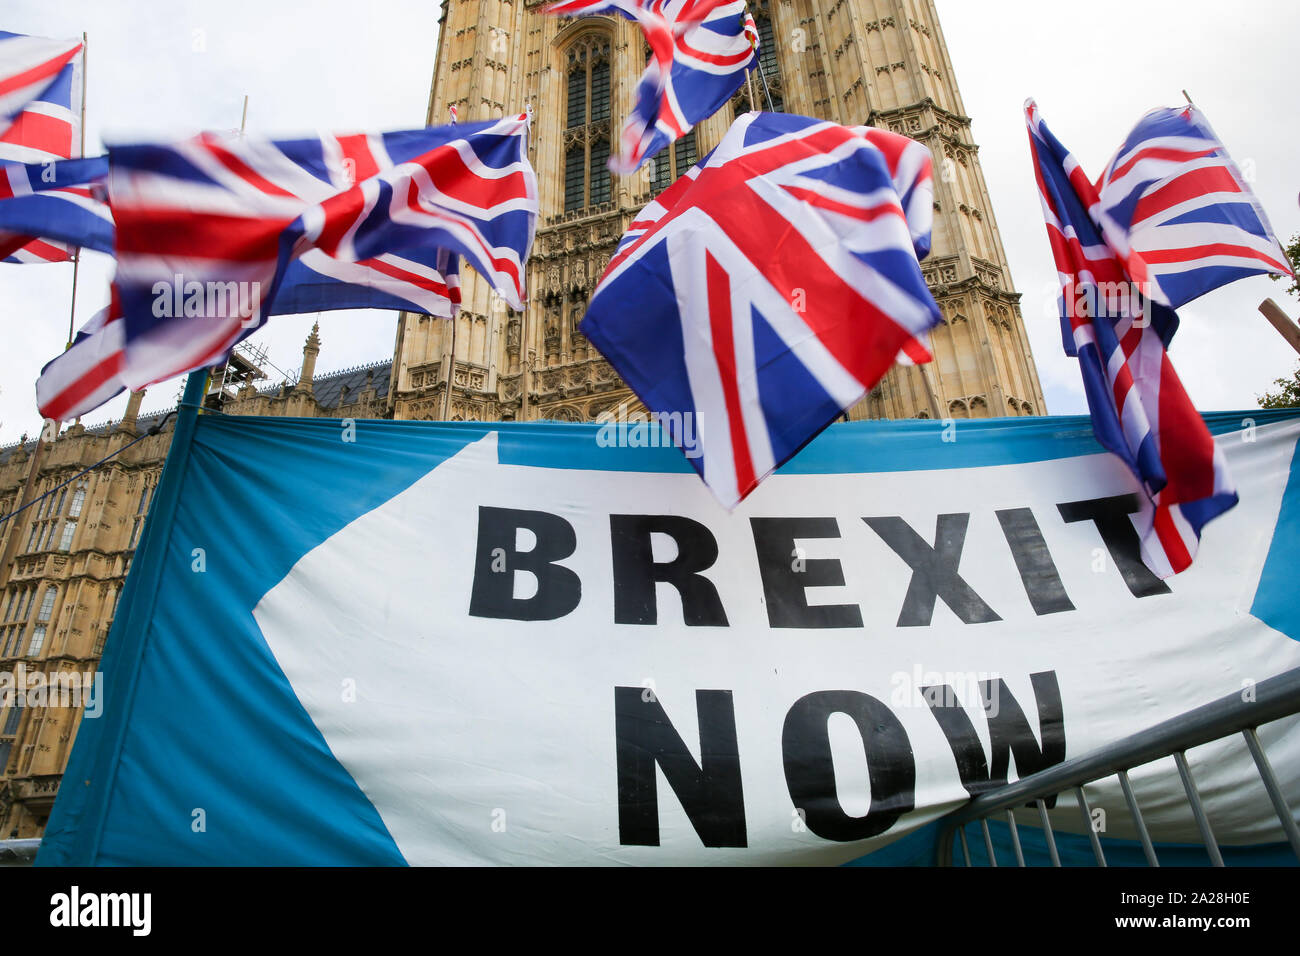 London, UK. 01st Oct, 2019. A banner saying, Brexit Now with Union Jack flags fluttering outside Houses of Parliament in Westminster. The British Prime Minister Boris Johnson is poised to reveal his final Brexit plan to EU leaders with less than a month to go before UK leaves the EU. Credit: SOPA Images Limited/Alamy Live News Stock Photo